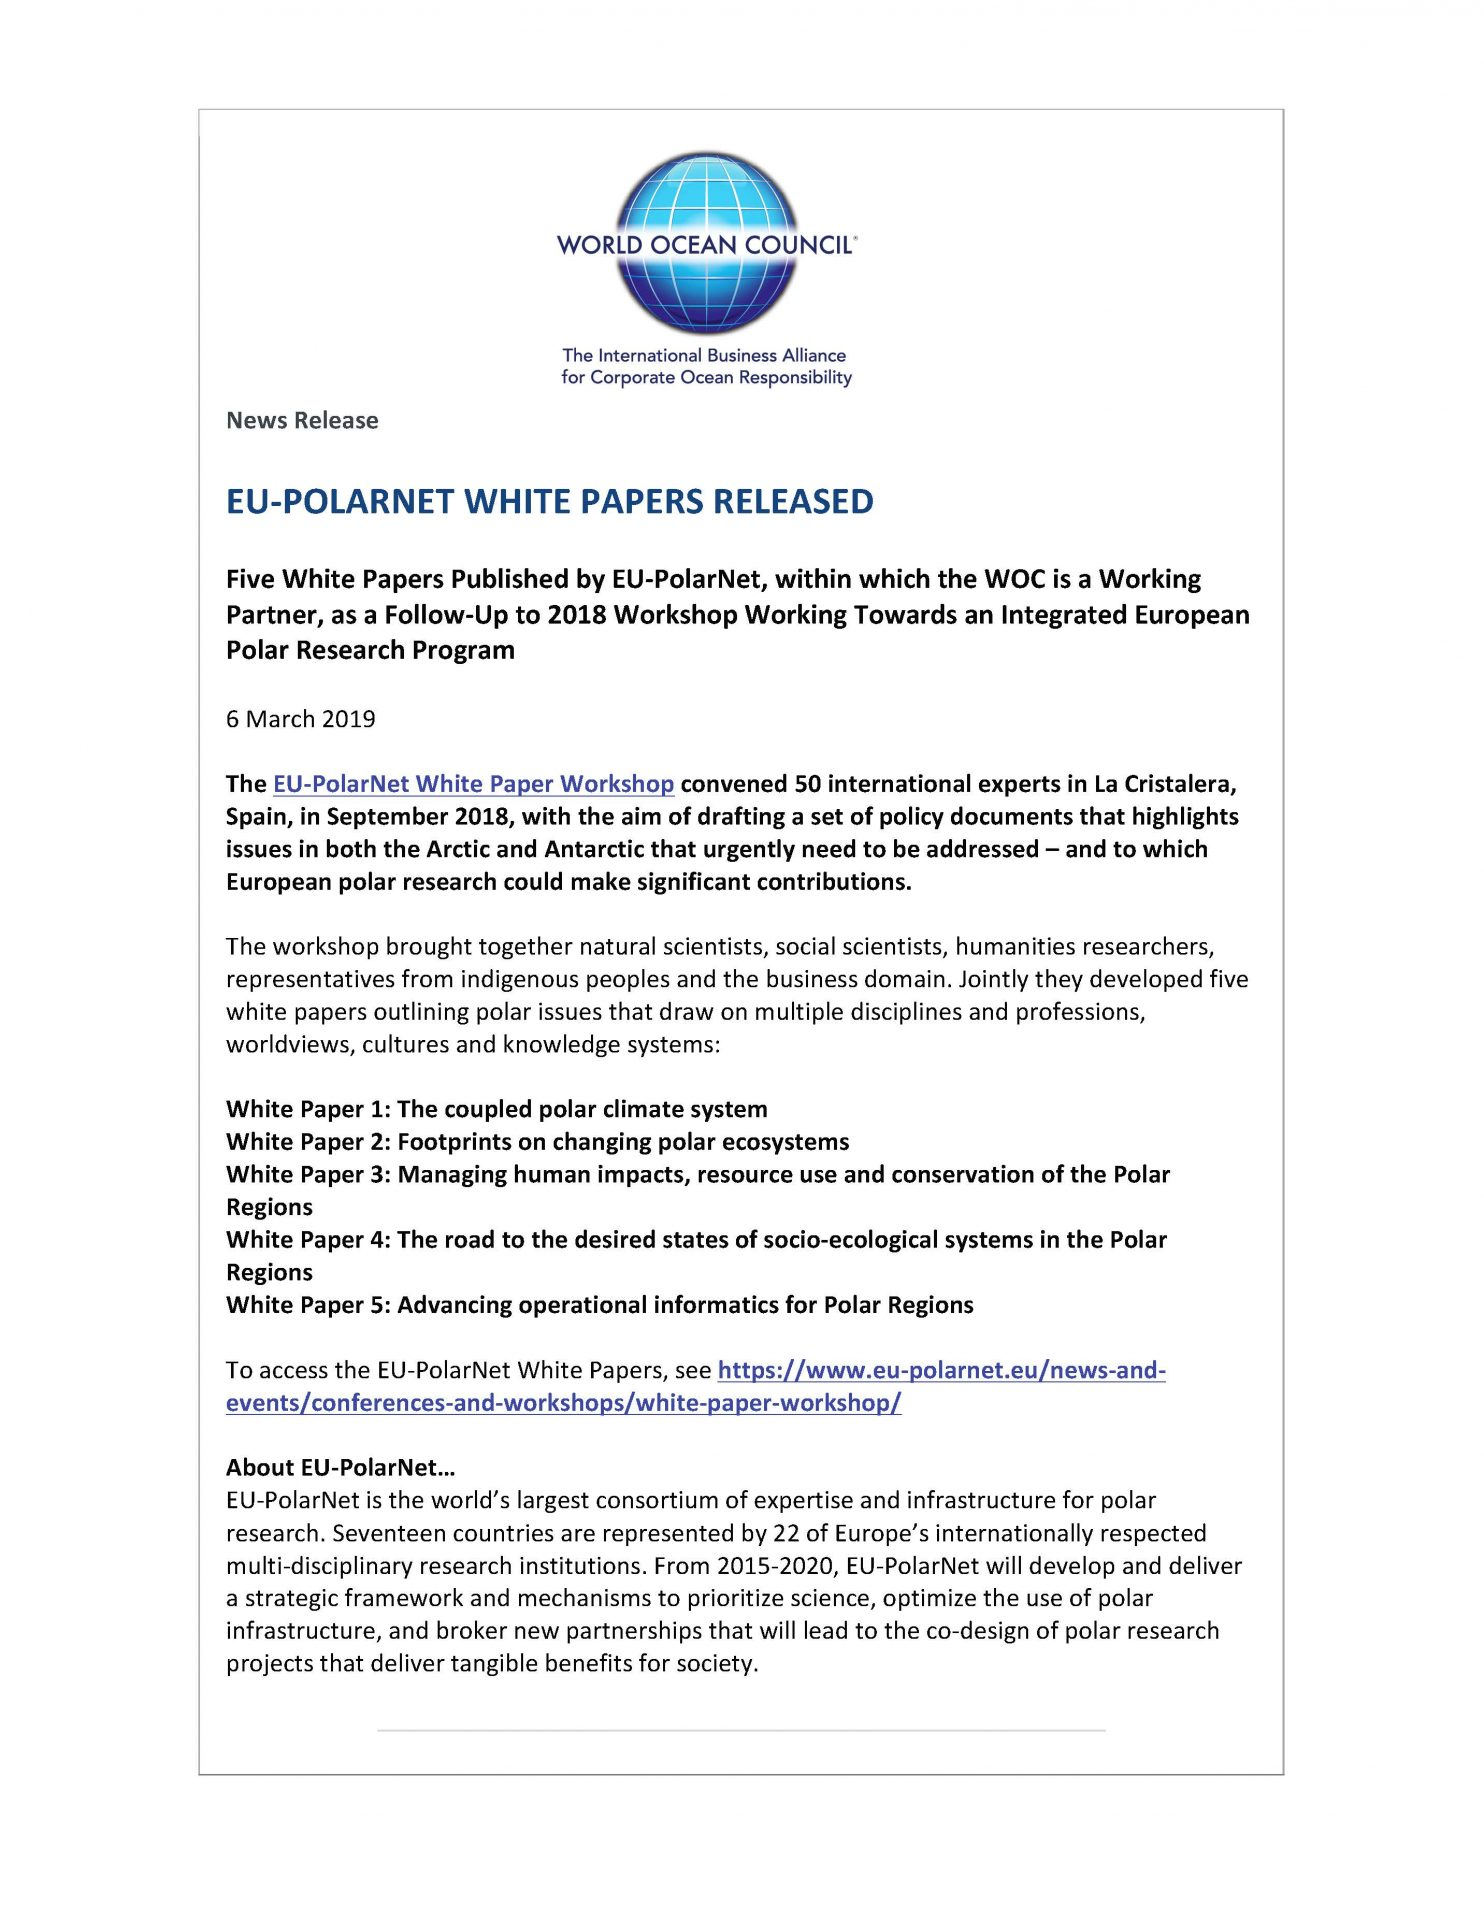 EU-PolarNet White Papers Released - 6 March 2019